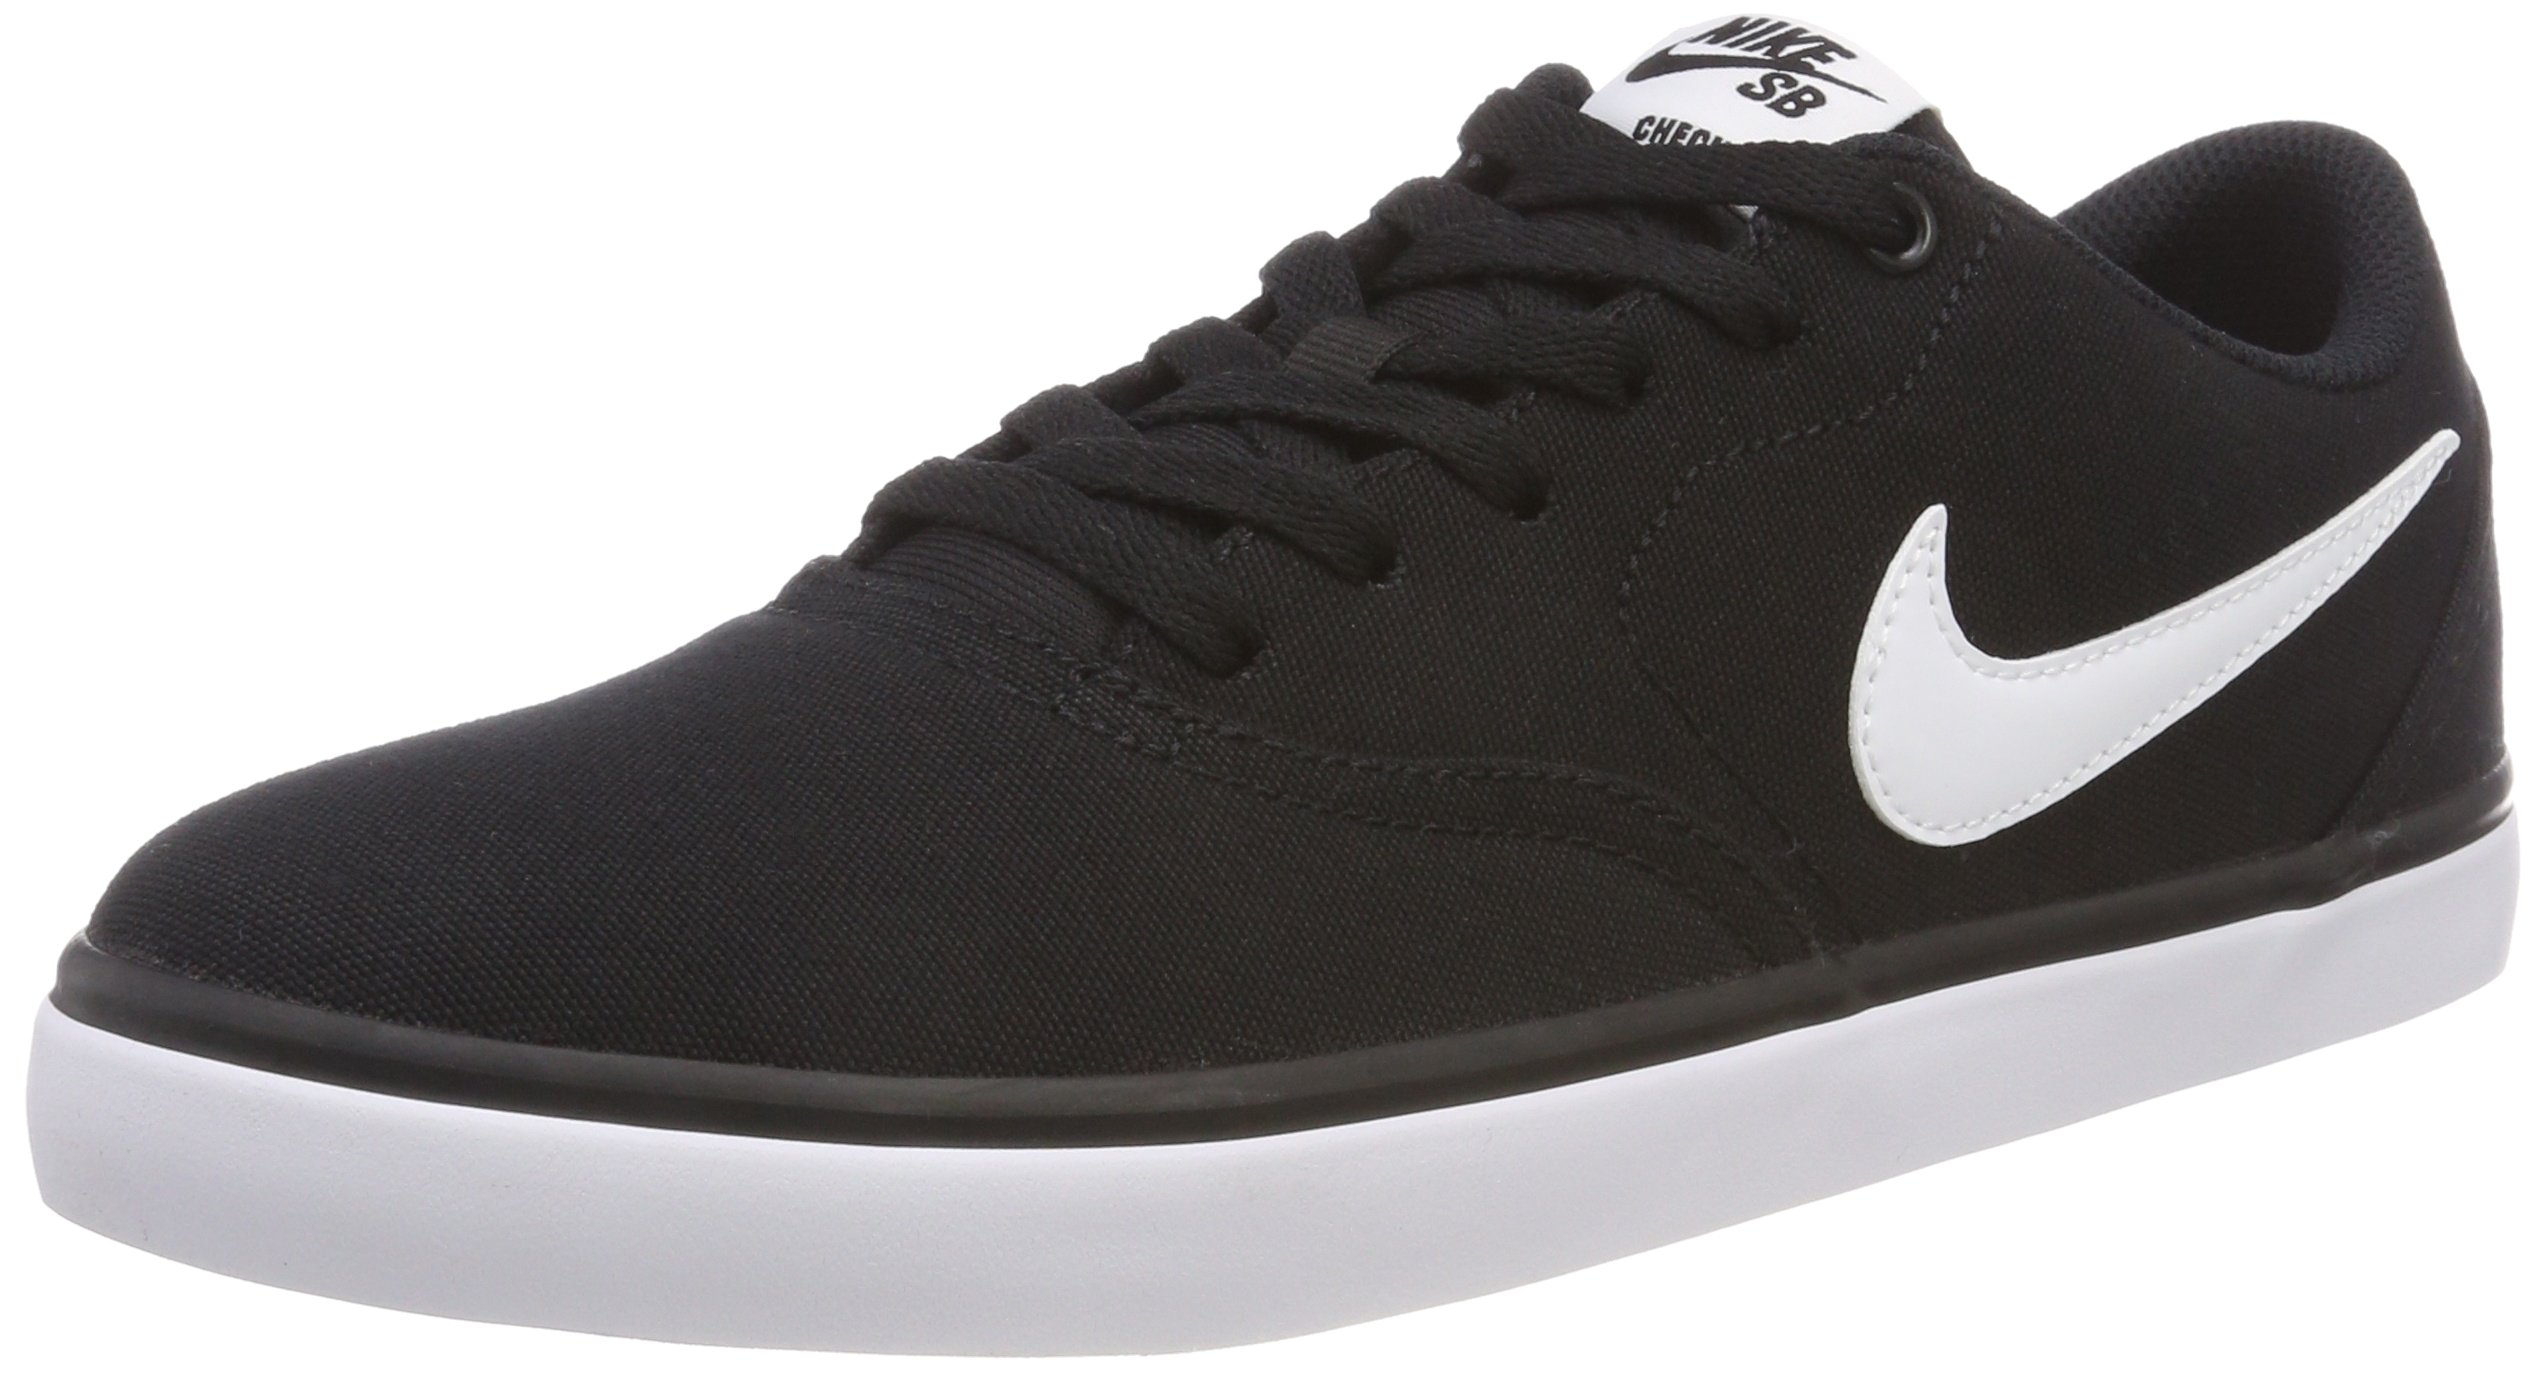 online store 707a1 baee4 Galleon - Nike Men s SB Check Solarsoft Canvas Skateboarding Shoe  Black White 12